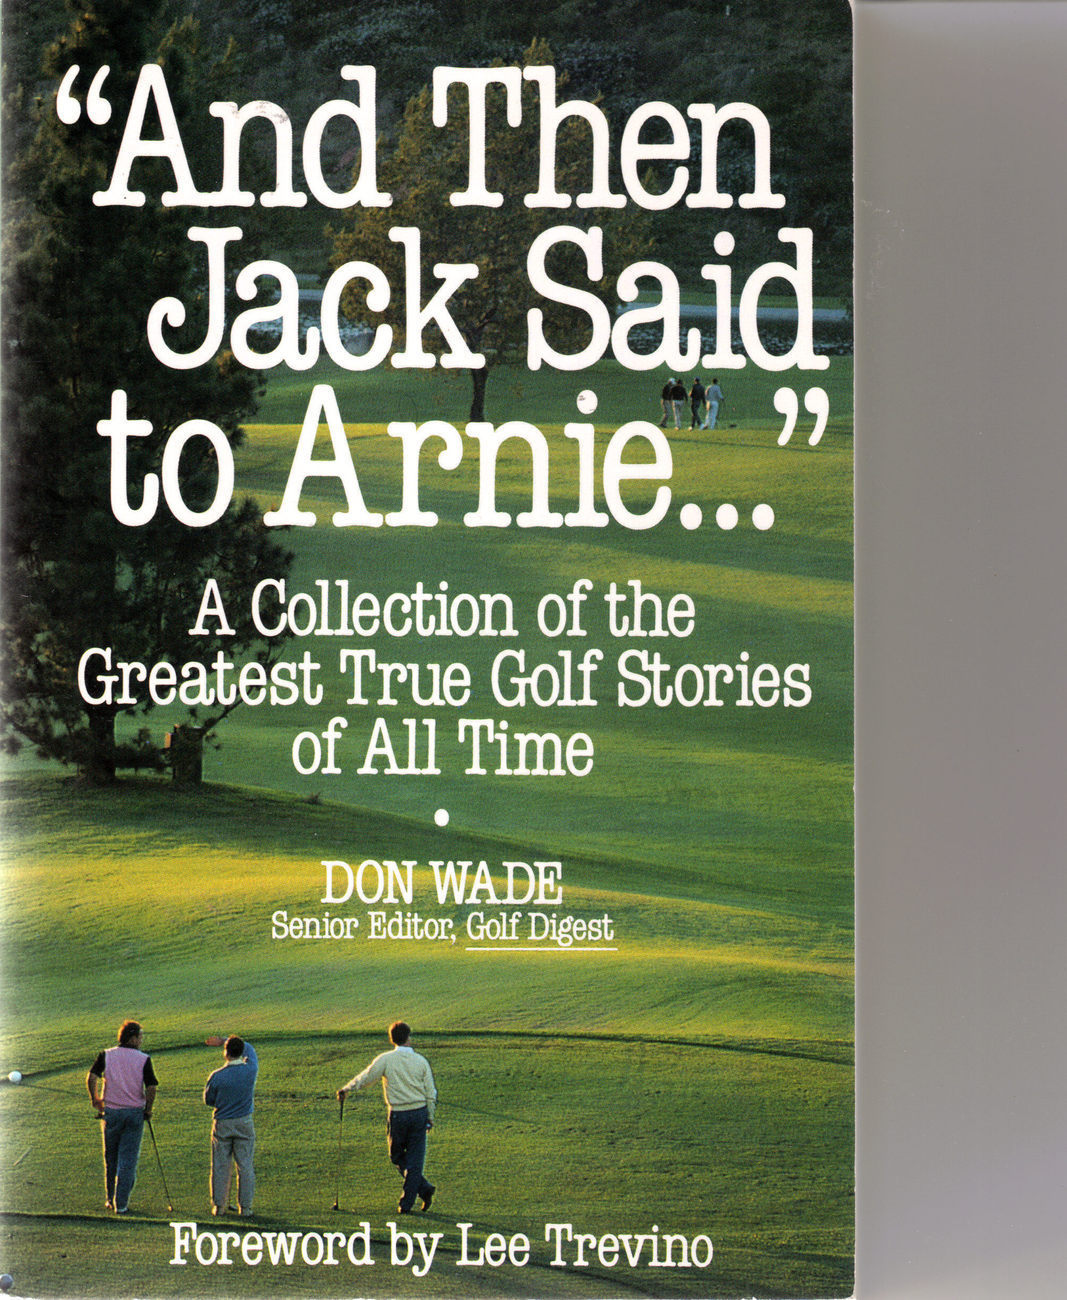 Jack said to arnie book